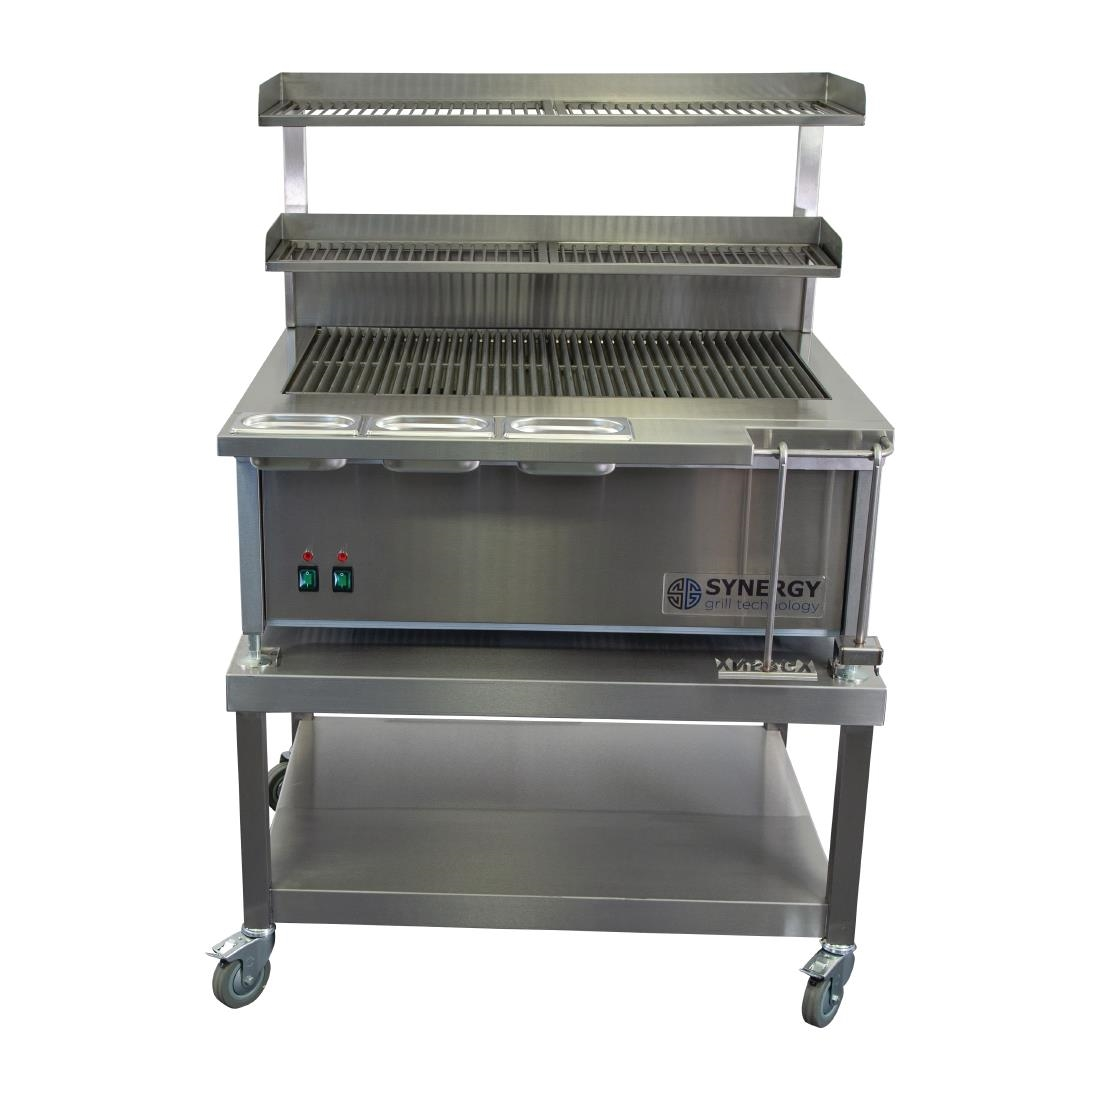 Image of Synergy SG900 Deep Grill with Garnish Rail and Slow Cook Shelf